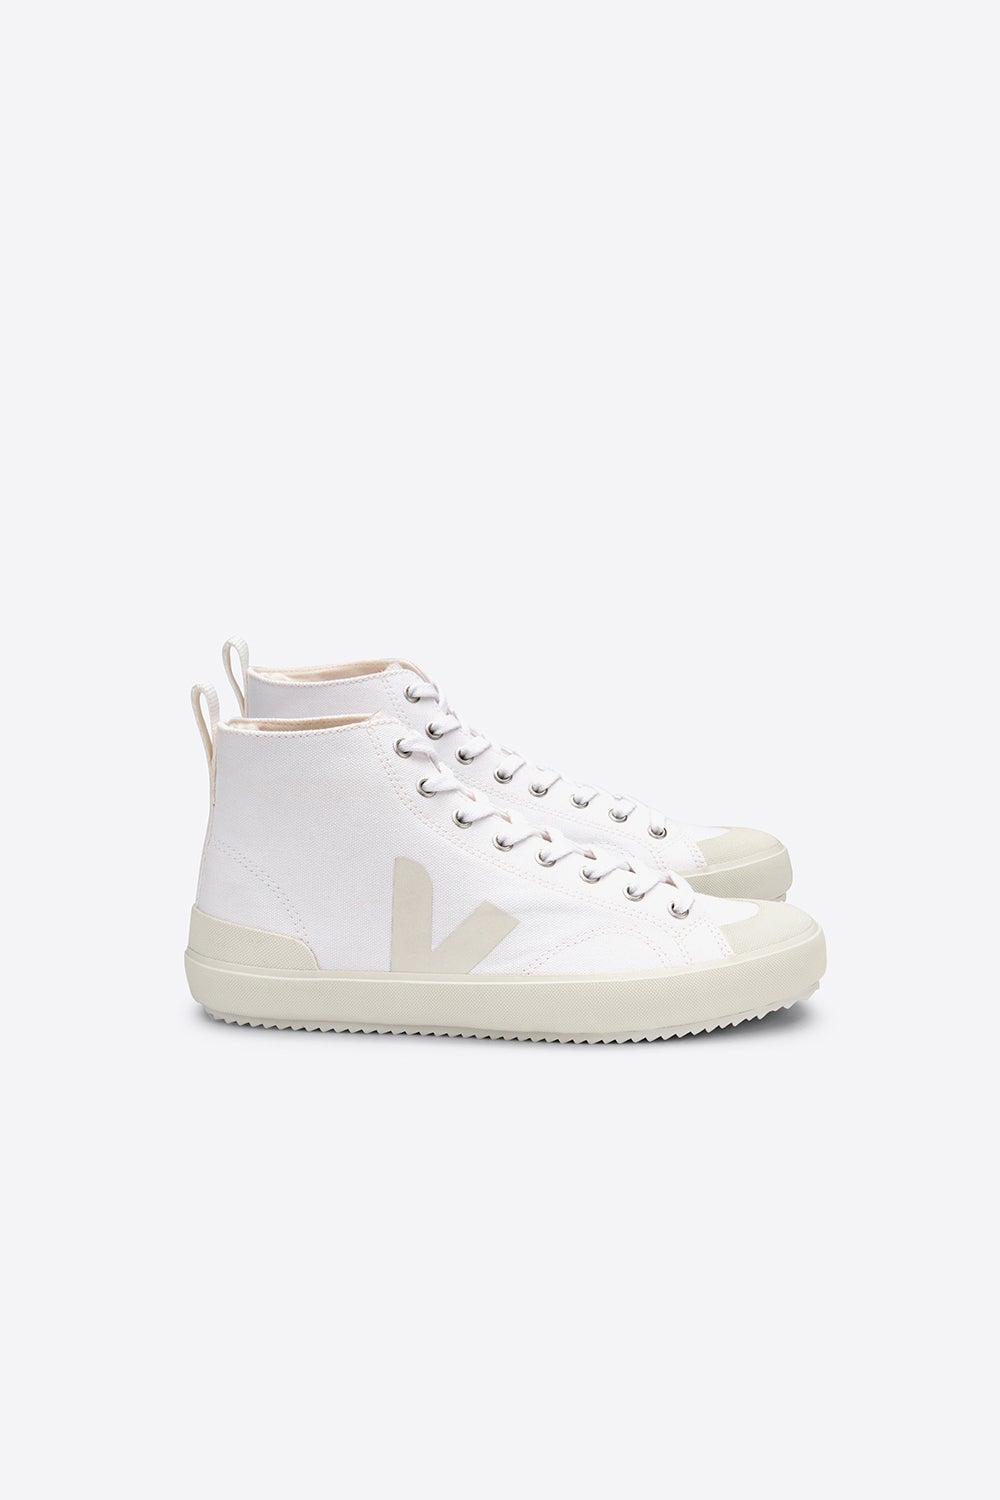 Veja Nova High Top White/Pierre